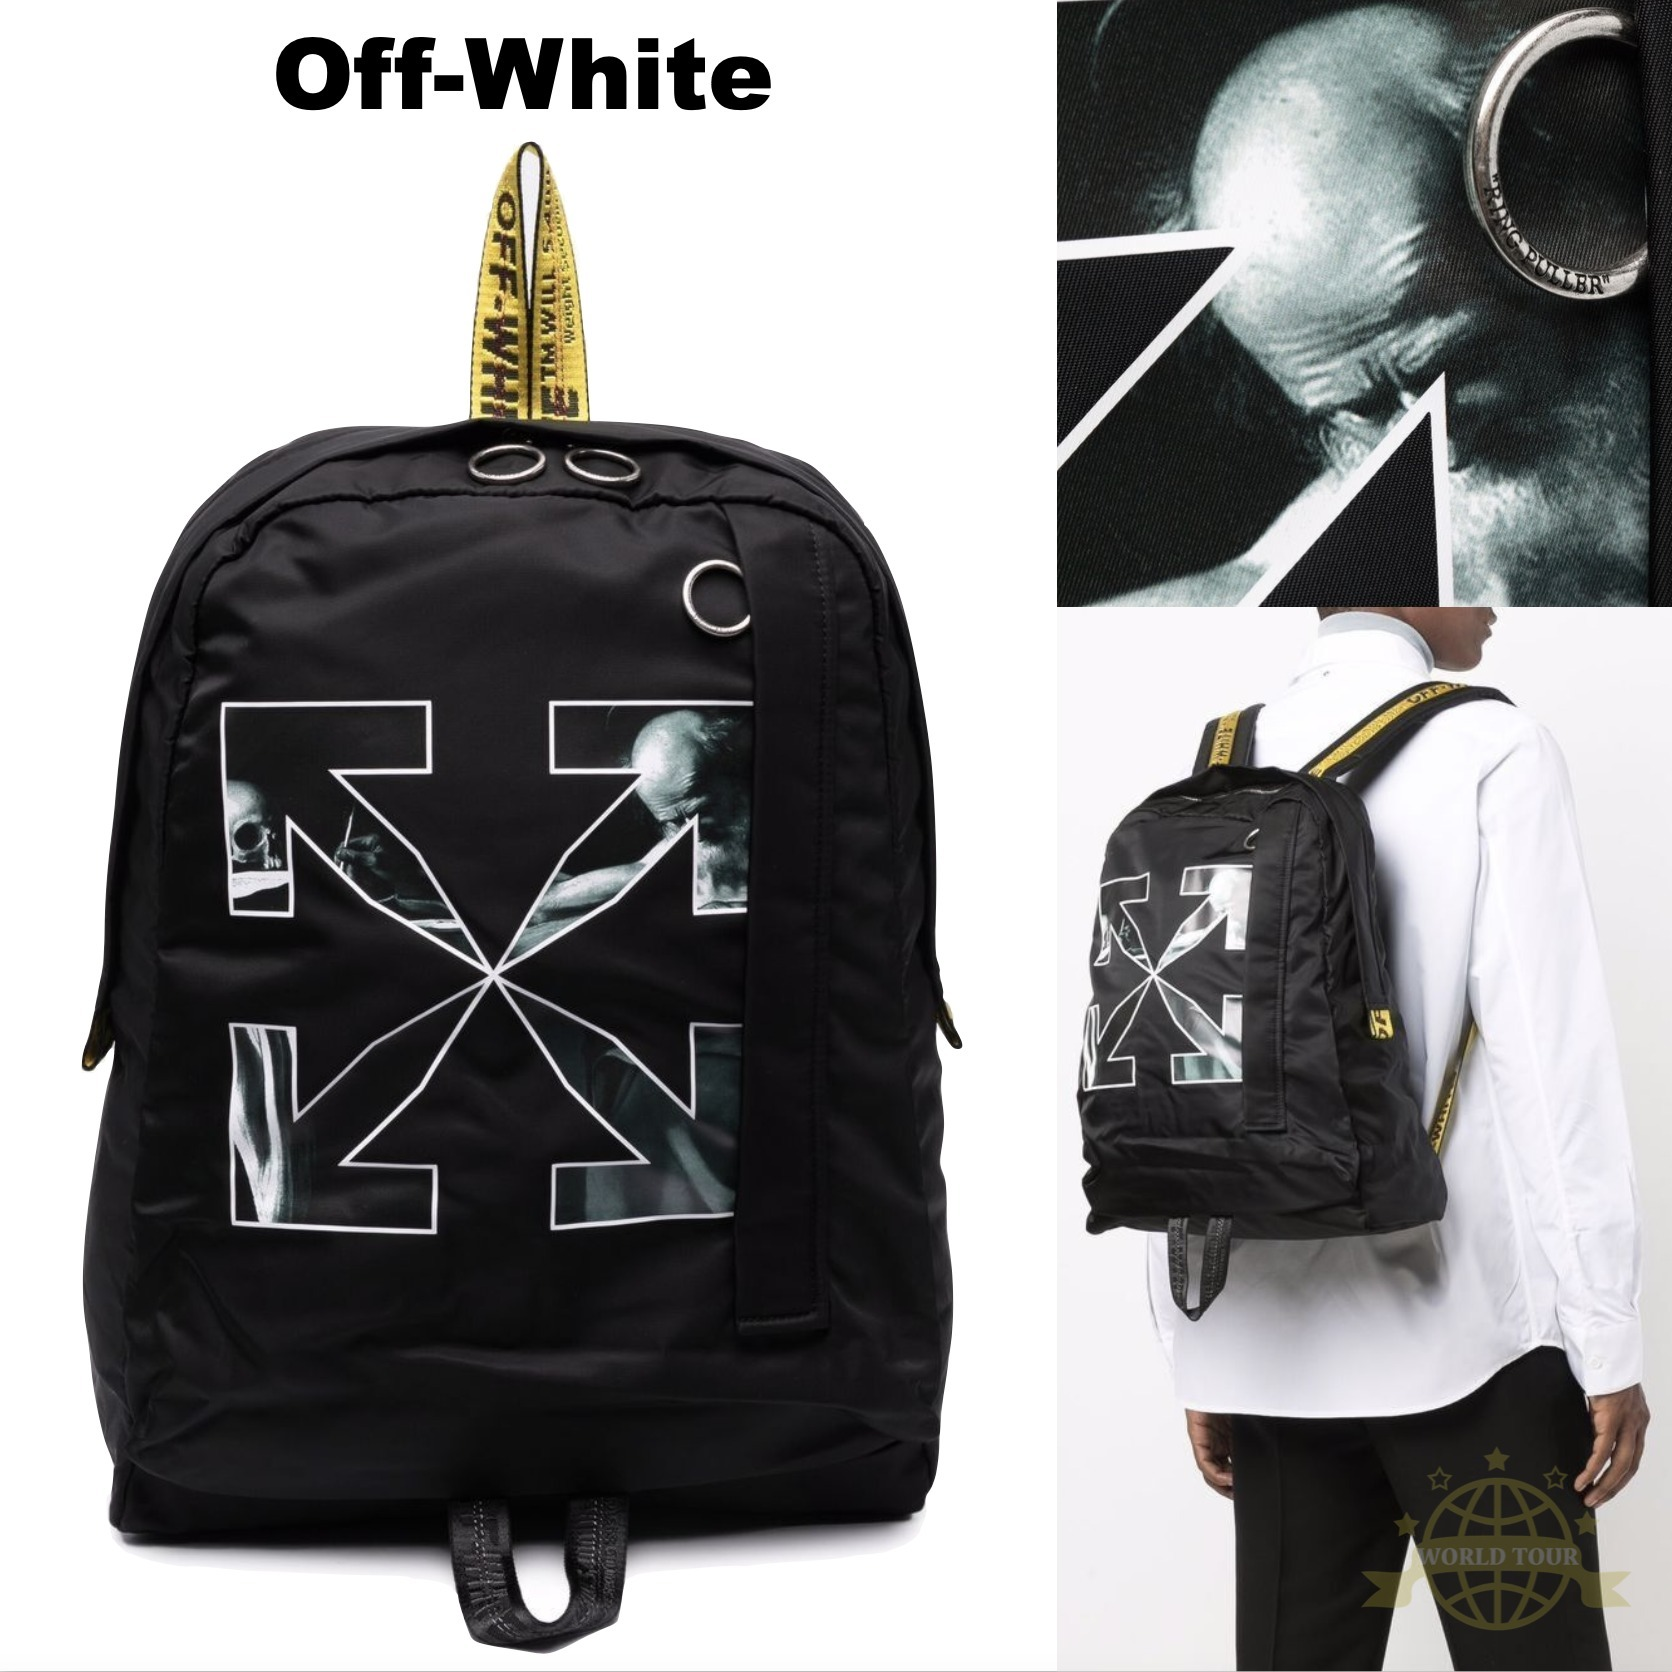 OFF WHITE INDUSTRIAL CARAVAGGIO ナイロン バックパック 関税込 (Off-White/バックパック・リュック) 72169943